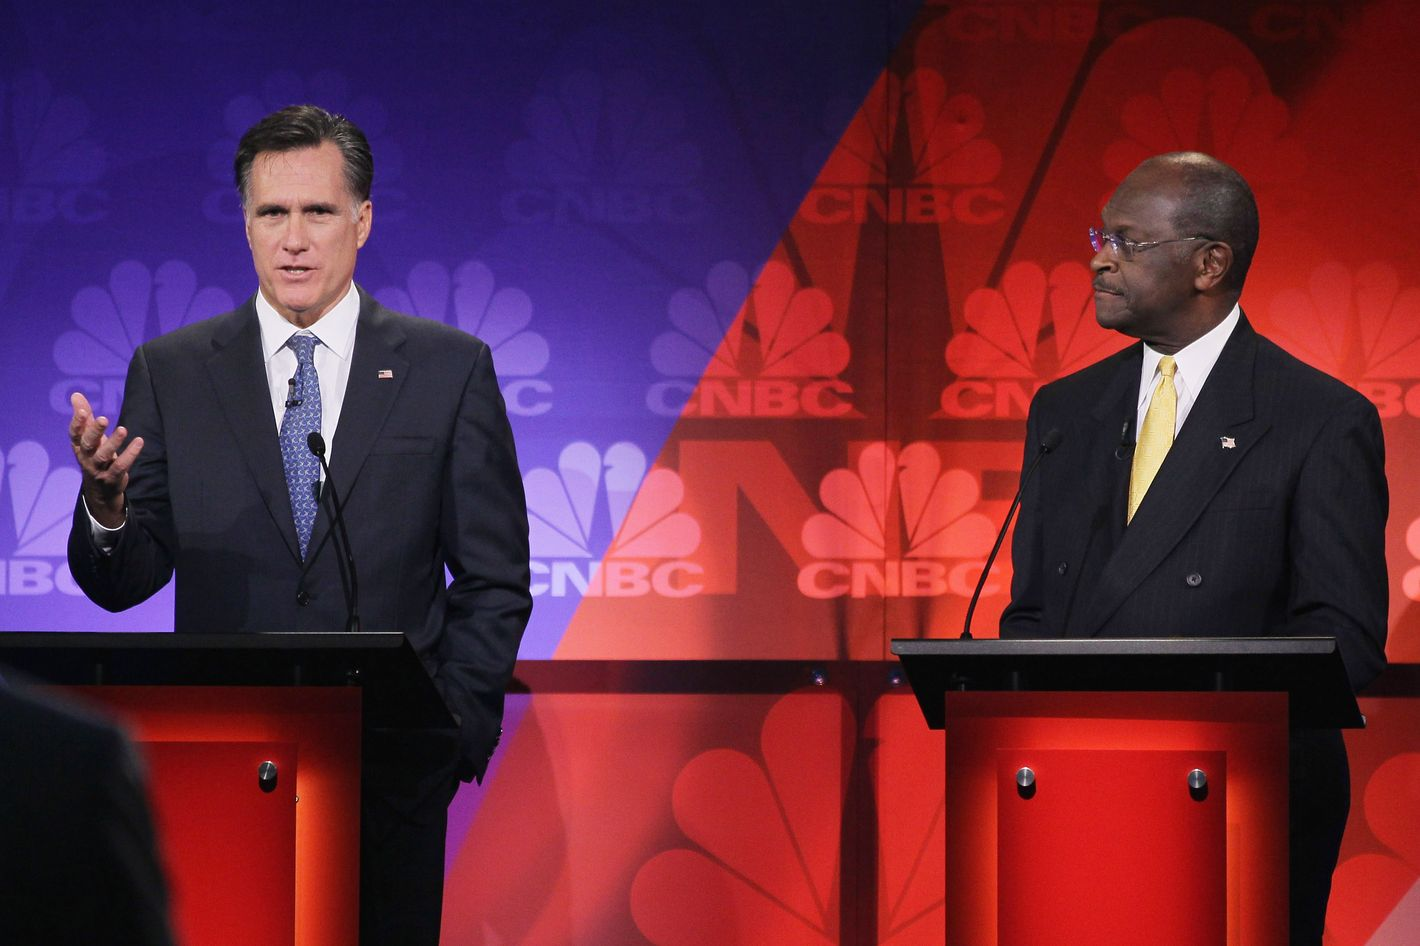 ROCHESTER, MI - NOVEMBER 09:  Former CEO of Godfather's Pizza Herman Cain (R) looks on as former Massachusetts Gov. Mitt Romney speaks during a debate hosted by CNBC and the Michigan Republican Party at Oakland University on November 9, 2011 in Rochester, Michigan. The debate is the first meeting of the eight GOP presidential hopefuls since allegations of sexual impropriety have surfaced against front-runner Herman Cain.   (Photo by Scott Olson/Getty Images)